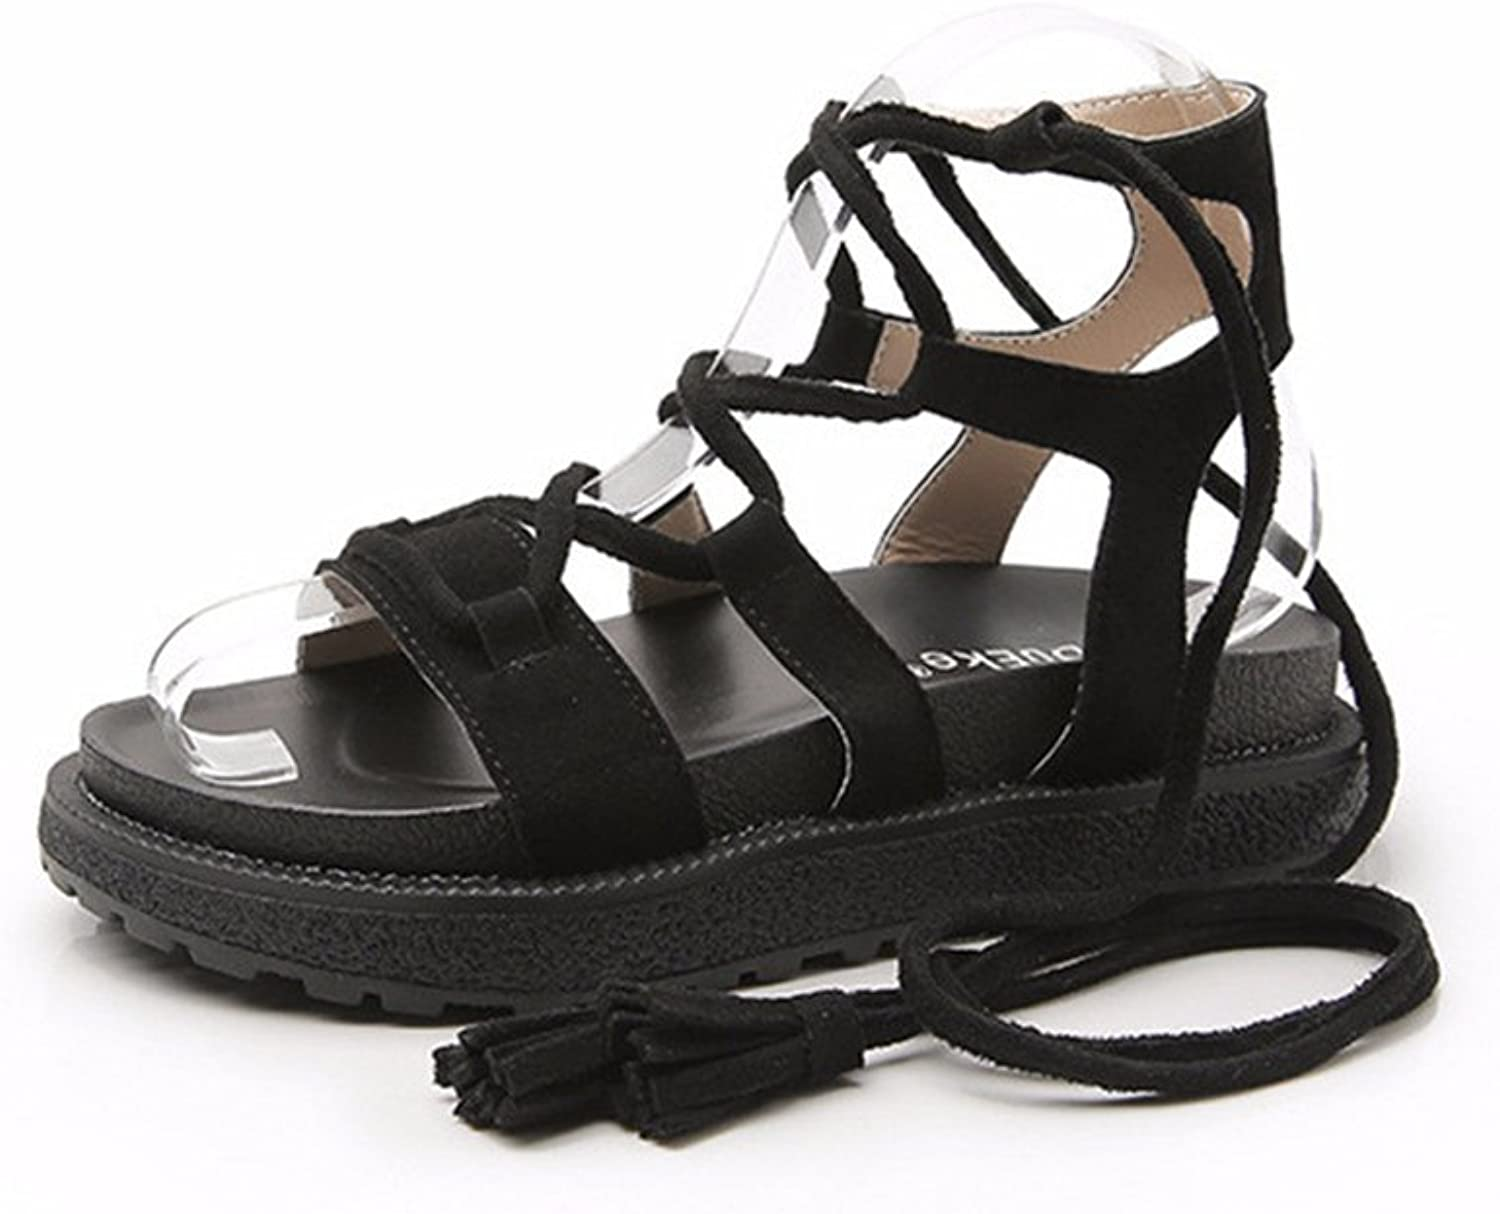 F1rst Rate Women's Summer Fashion Peep-Toe Lace-Up Platform Sandals Beach shoes